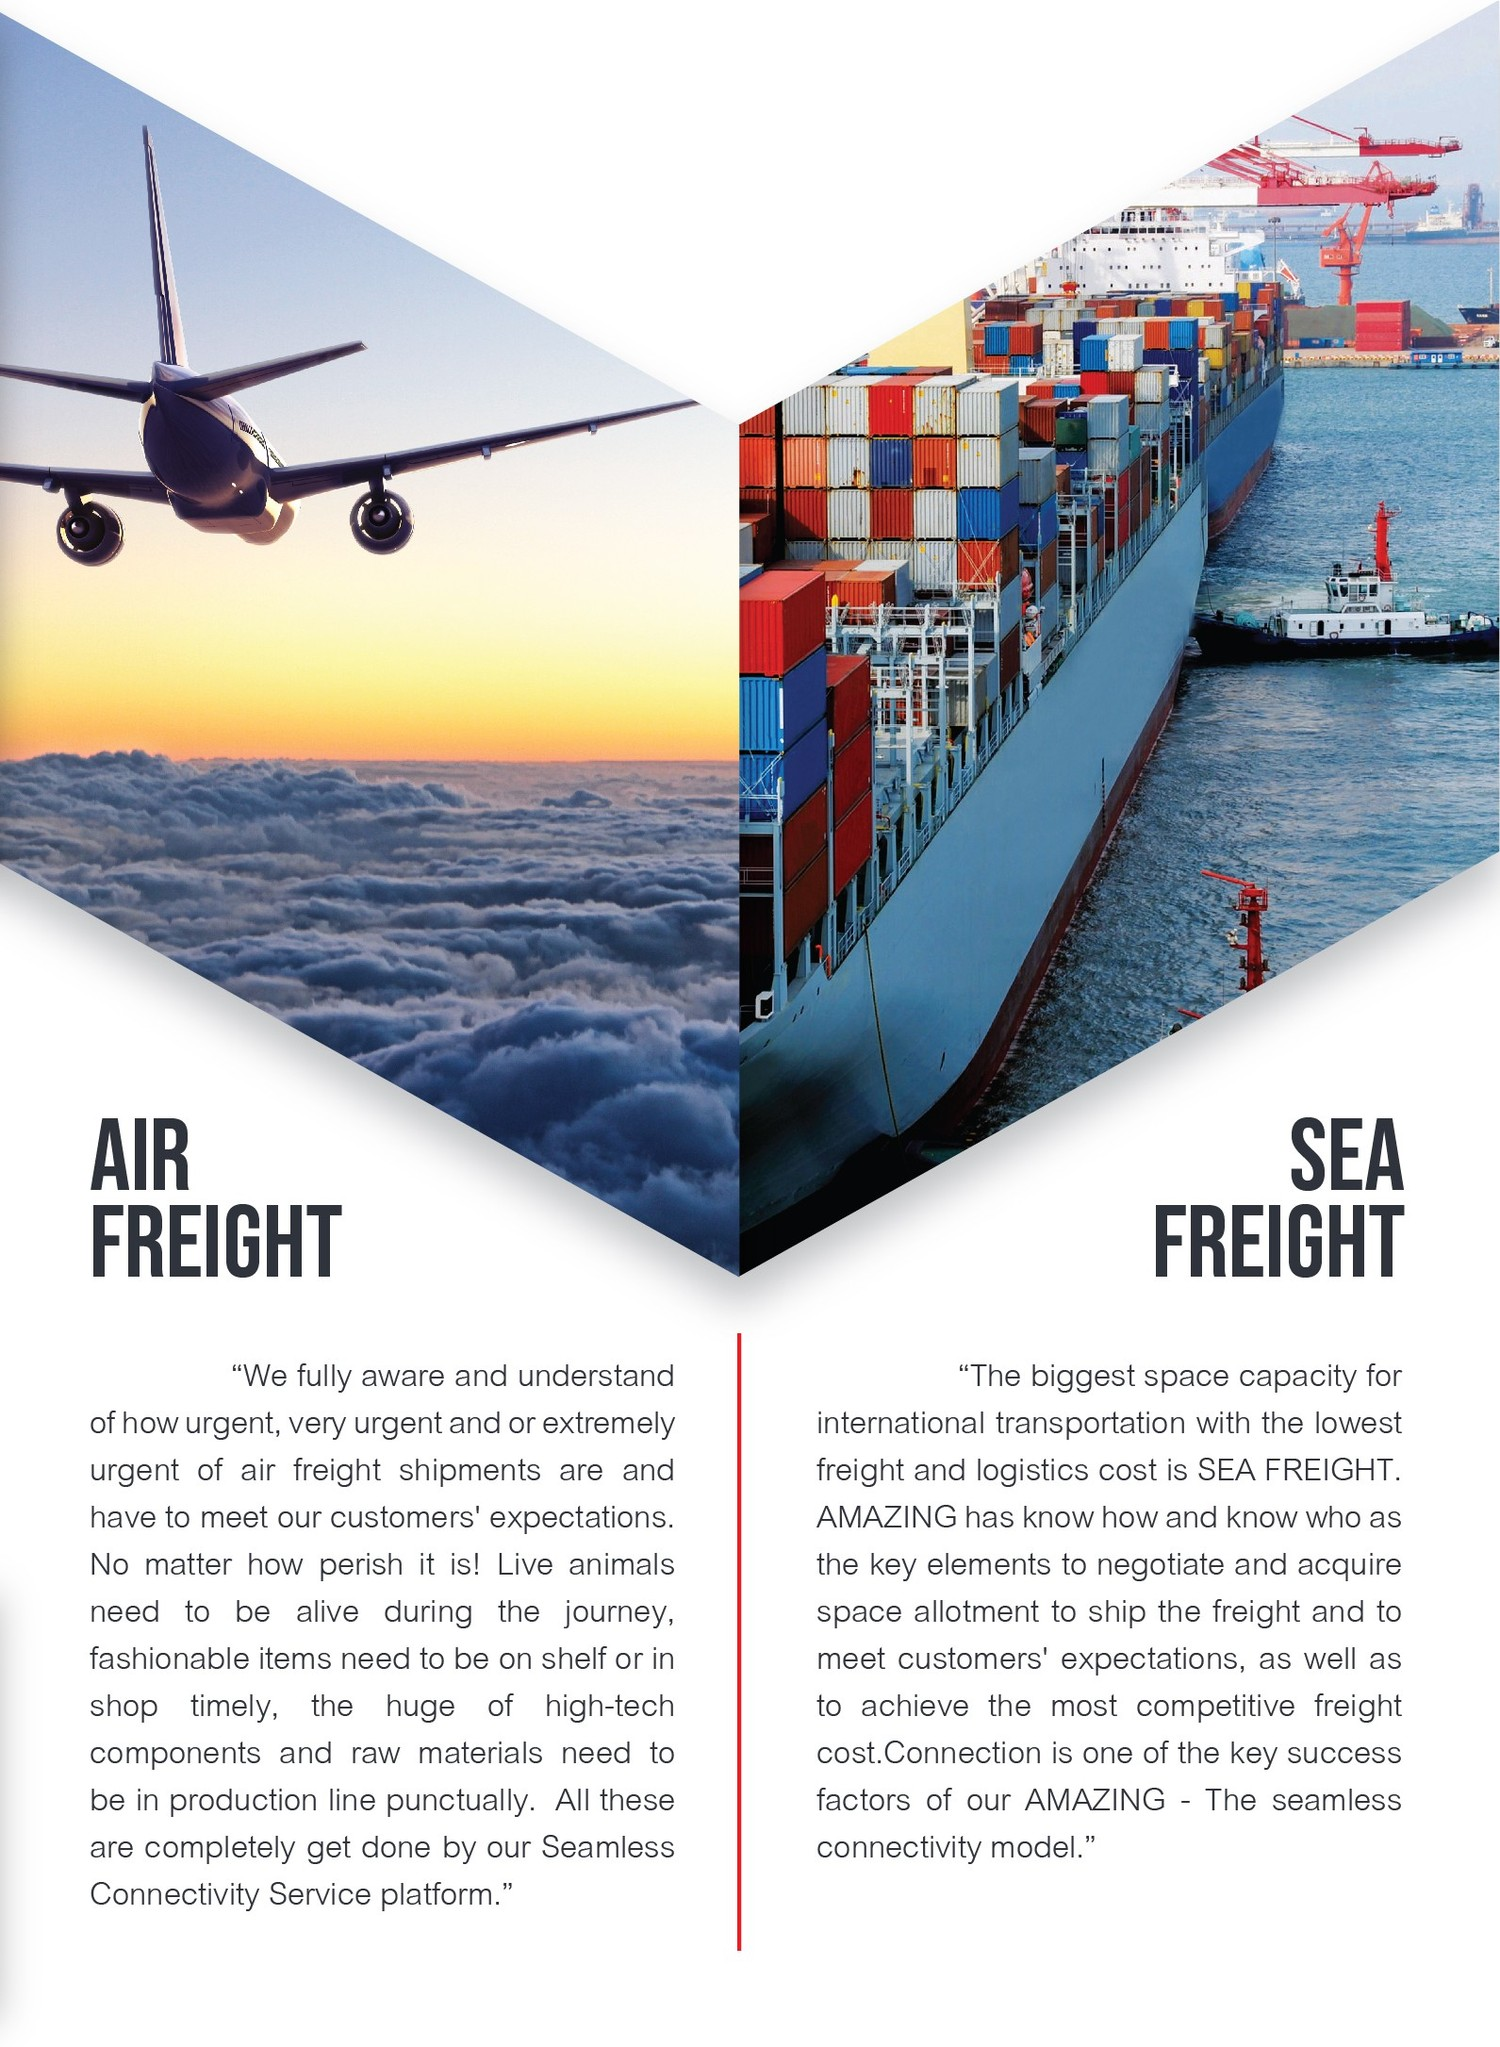 Air Freight / Sea Freight